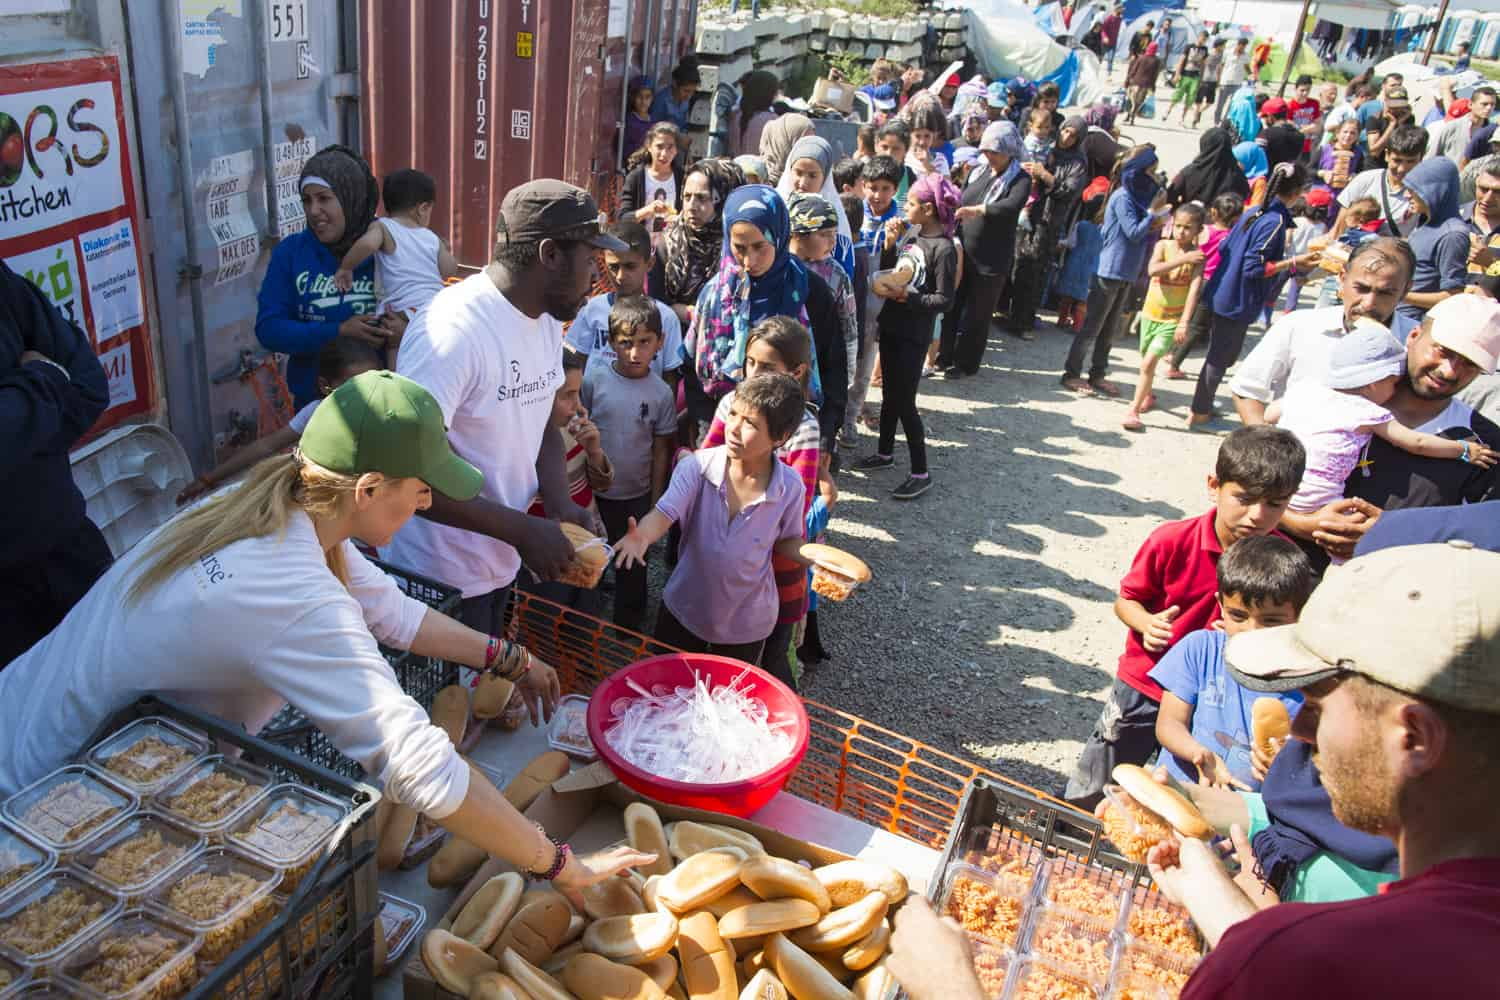 Samaritan's Purse food distribution for refugees in Greece.